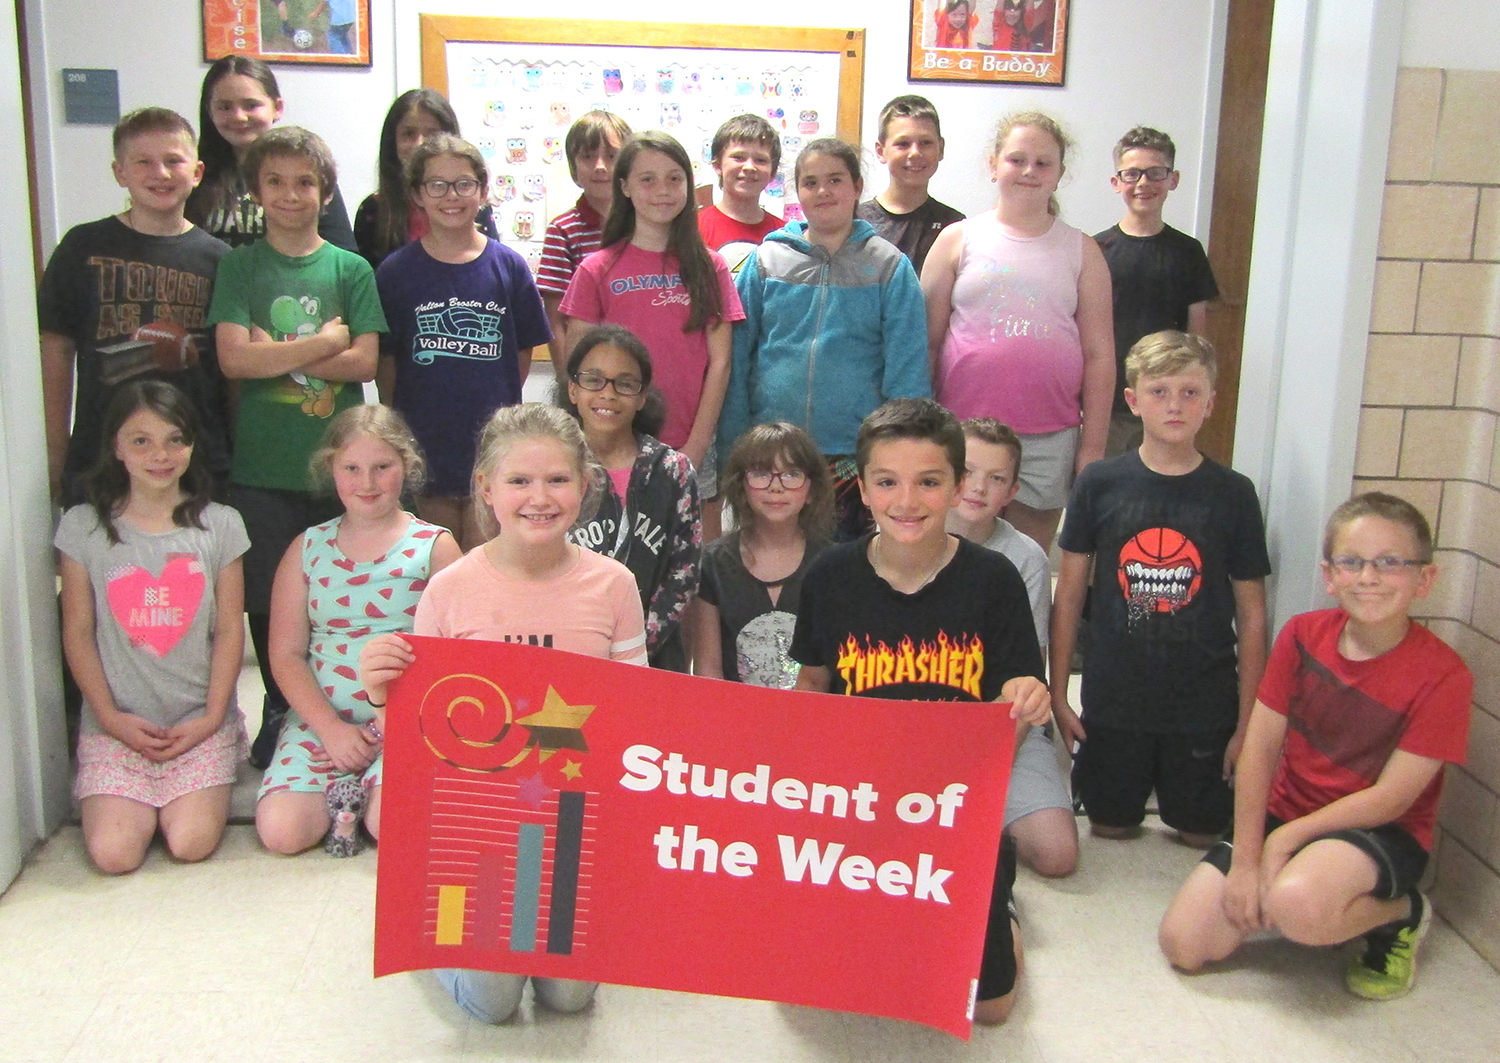 4th grade student of the week